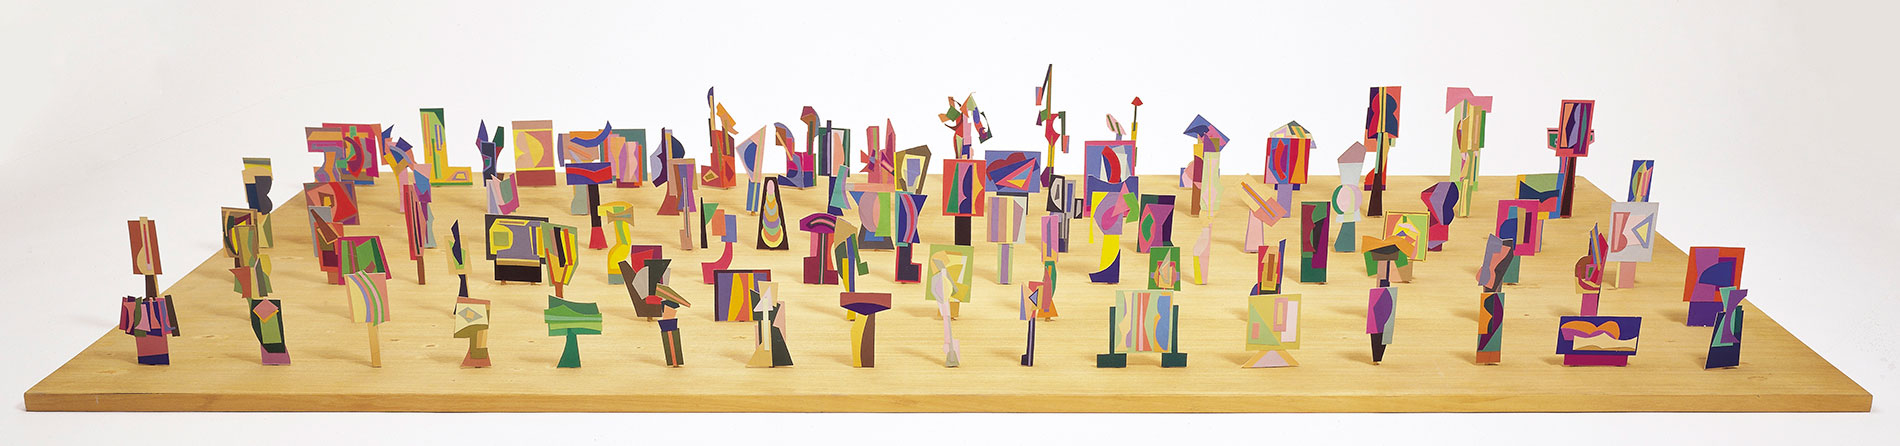 Robert Klippel 'Opus 363 Ninety-three constructions of coloured paper' (1980) Collage, coloured paper, cardboard, table base 98.6 x 184 x 83cm $350,000